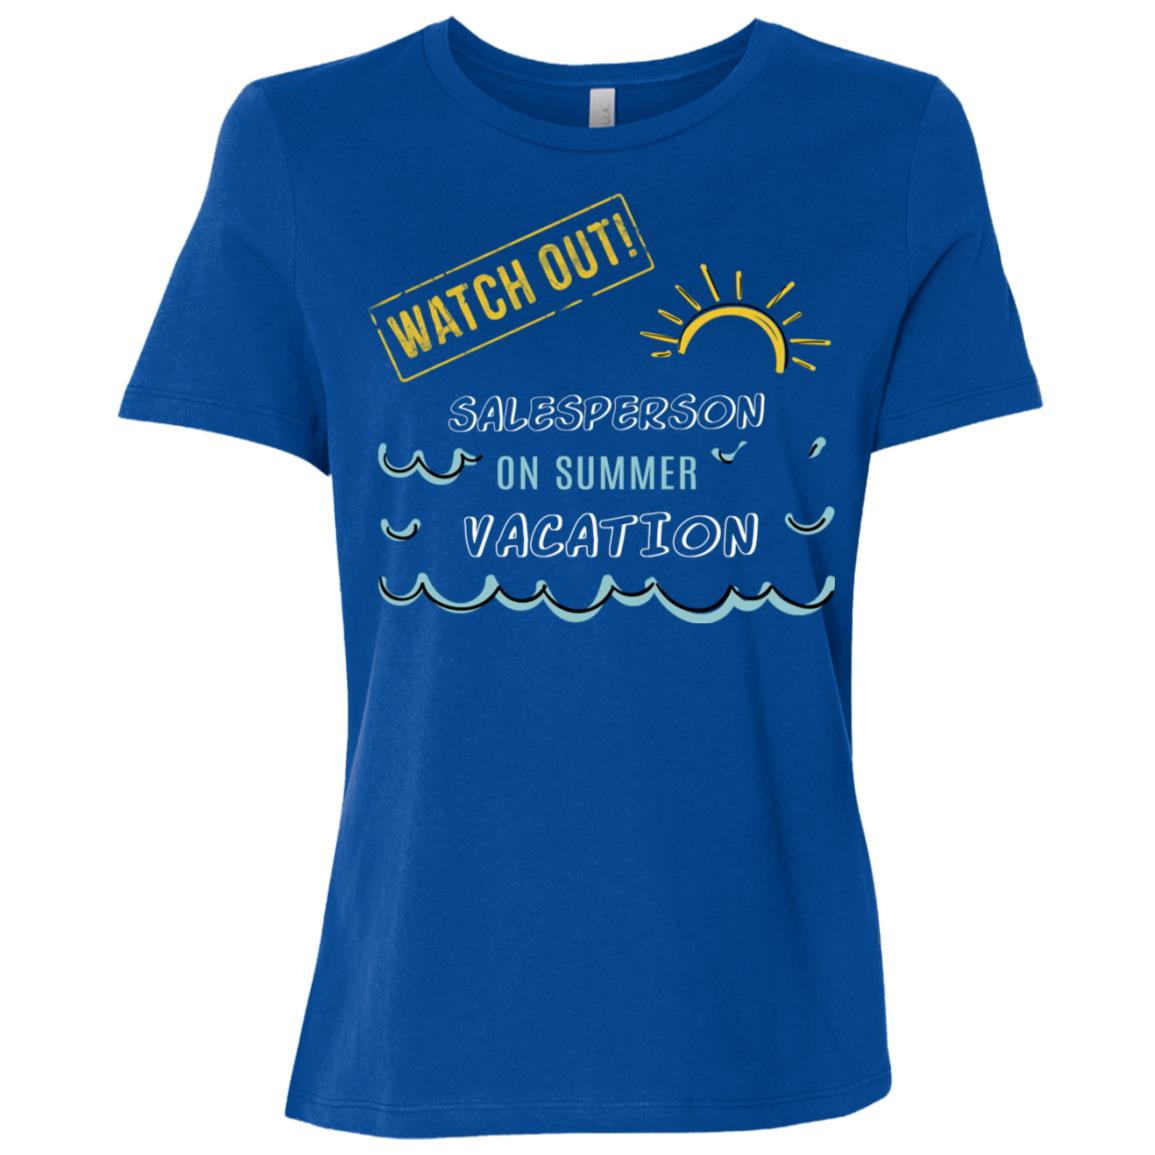 Watch Out Salesperson On Summer Vacation Funny Women Short Sleeve T-Shirt